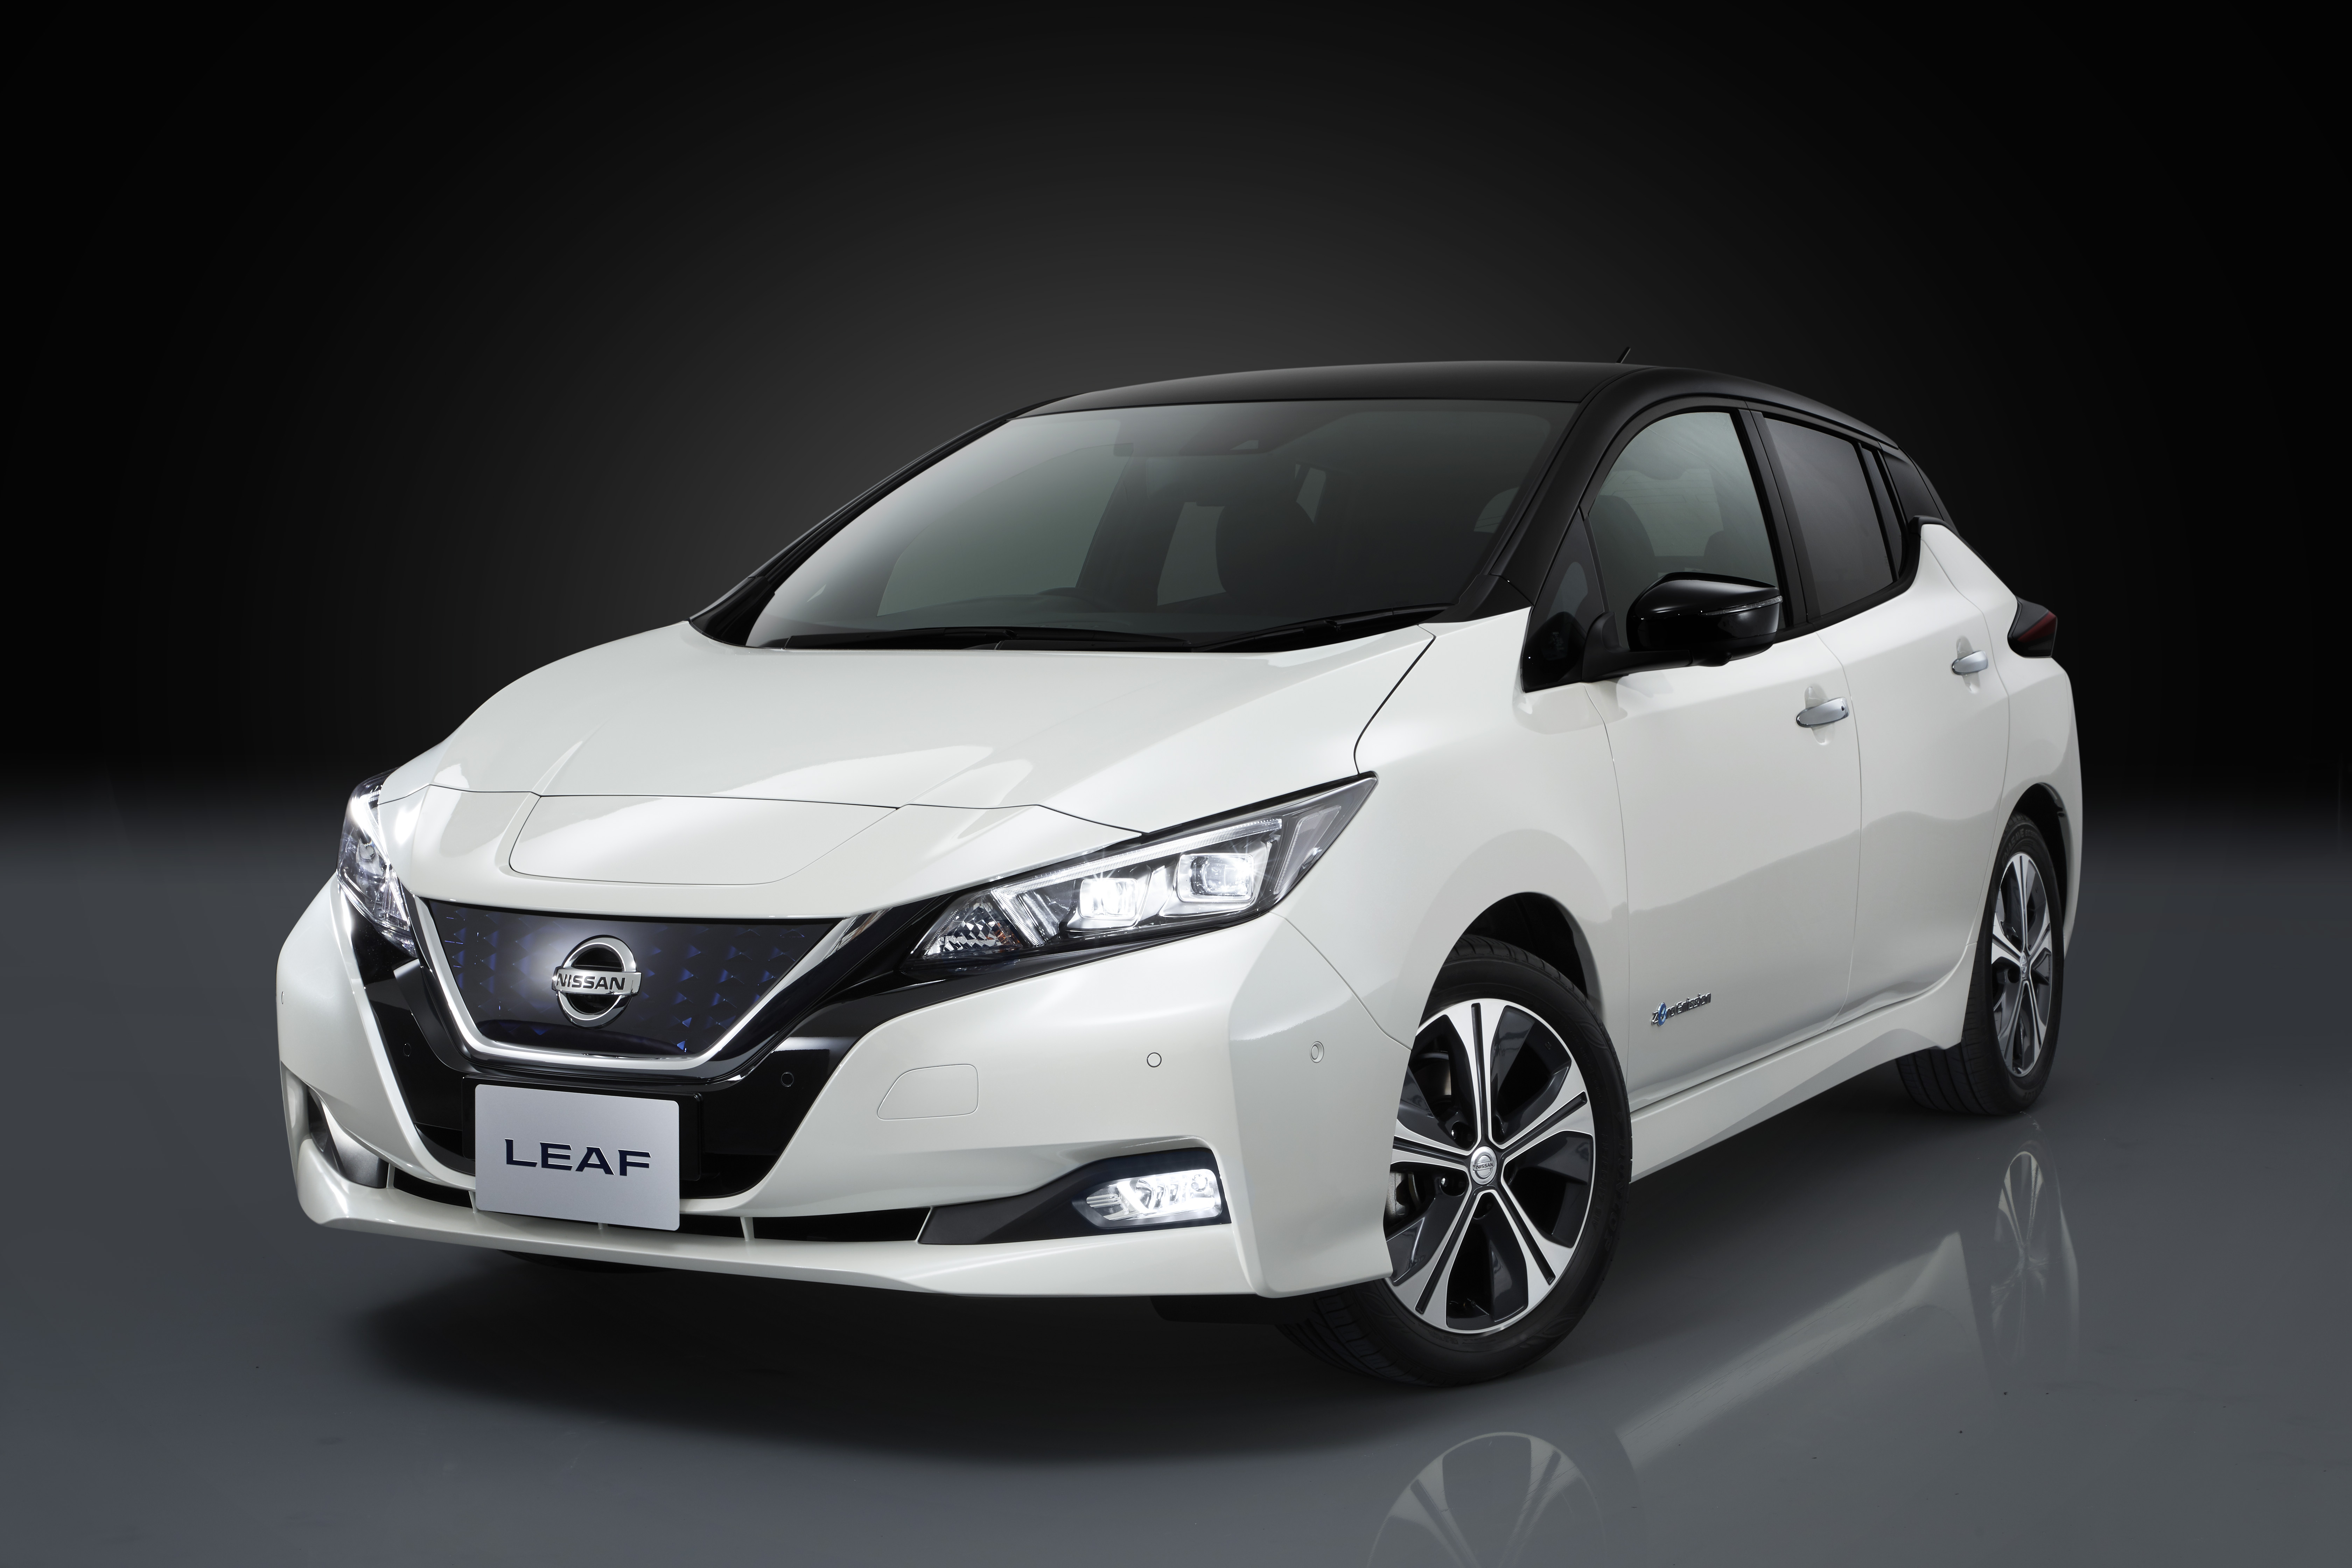 Nissan says the Leaf will be the world's best-selling electric car.